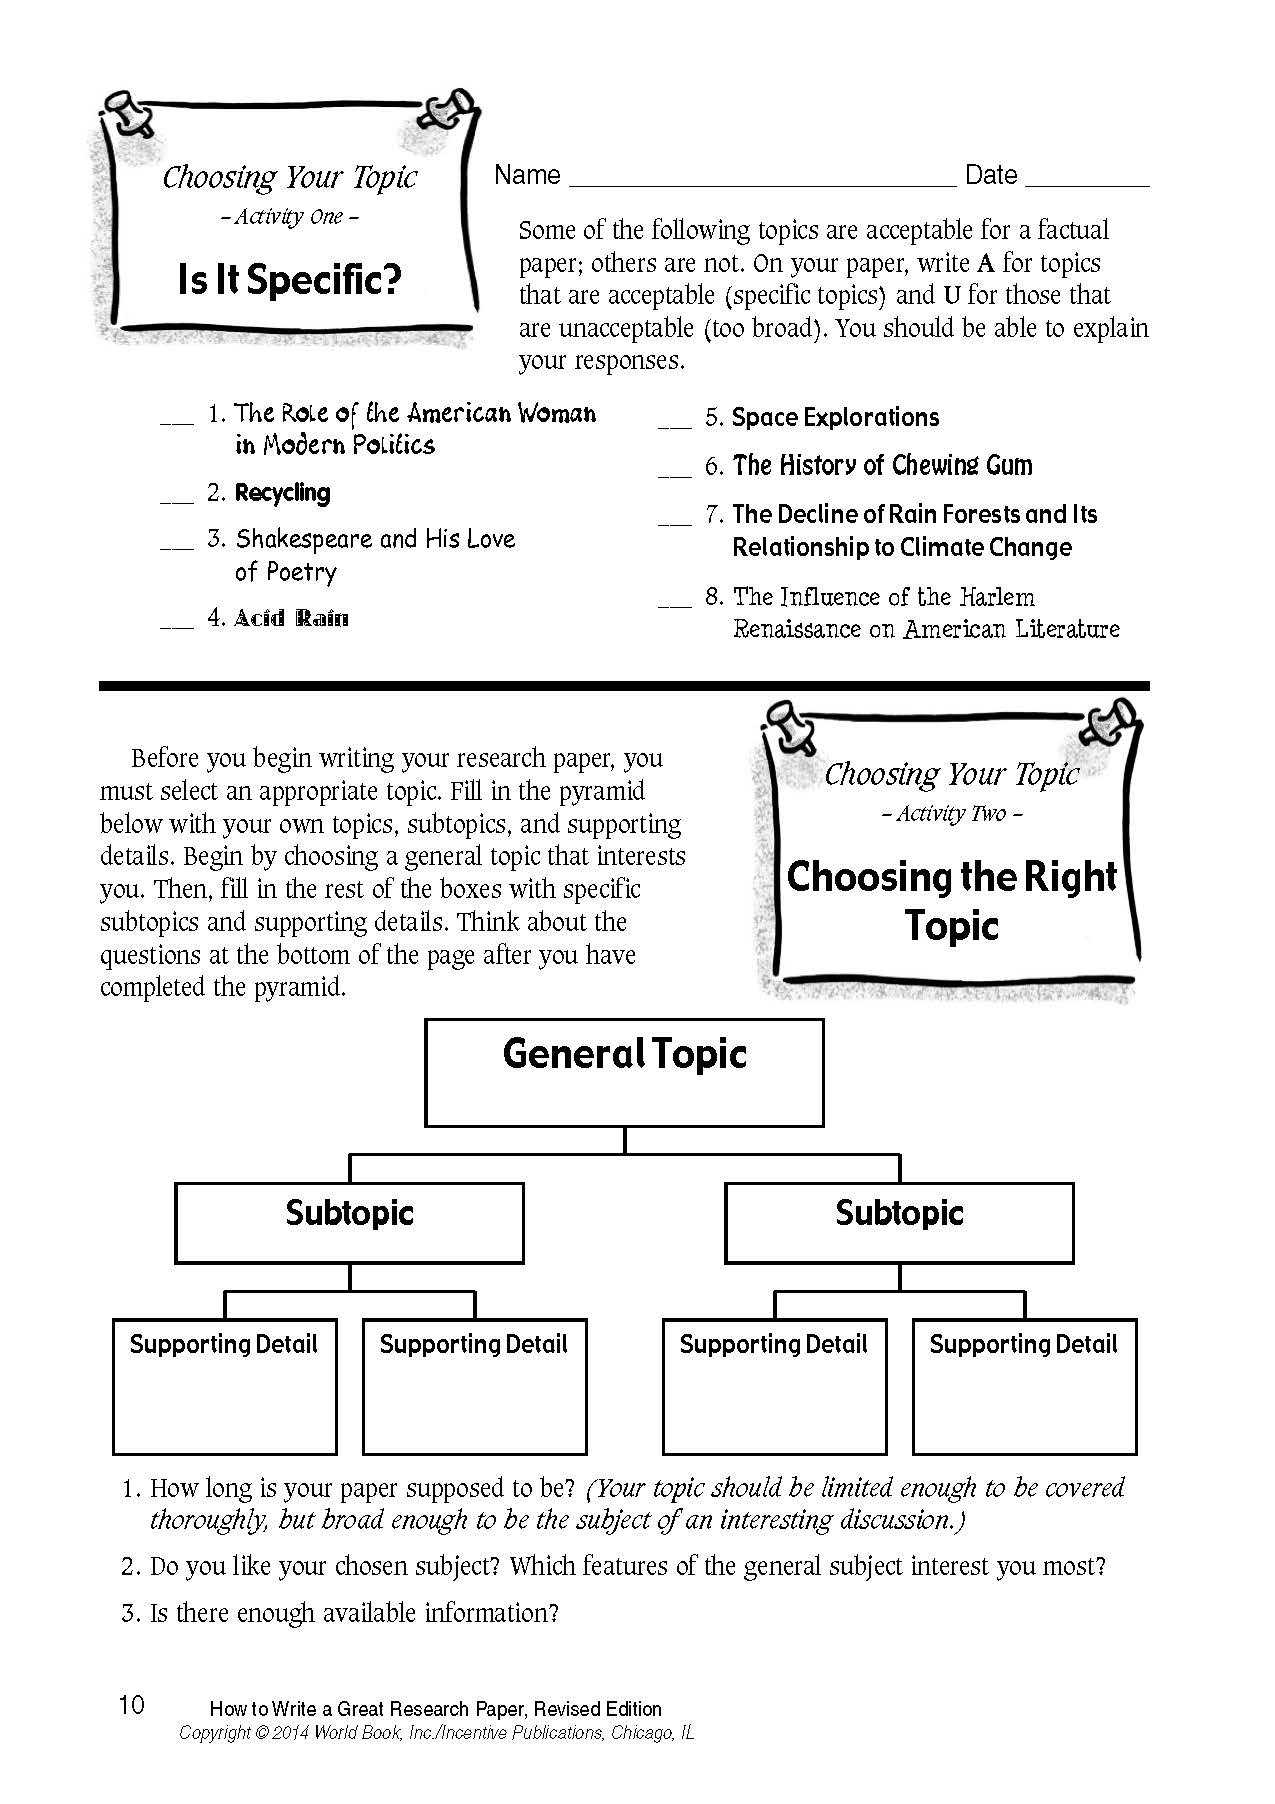 How To Write A Great Research Paper  World Book How To Write A Great Research Paper Page  Purchase Literature Review also Business Essay Example  Essay Science